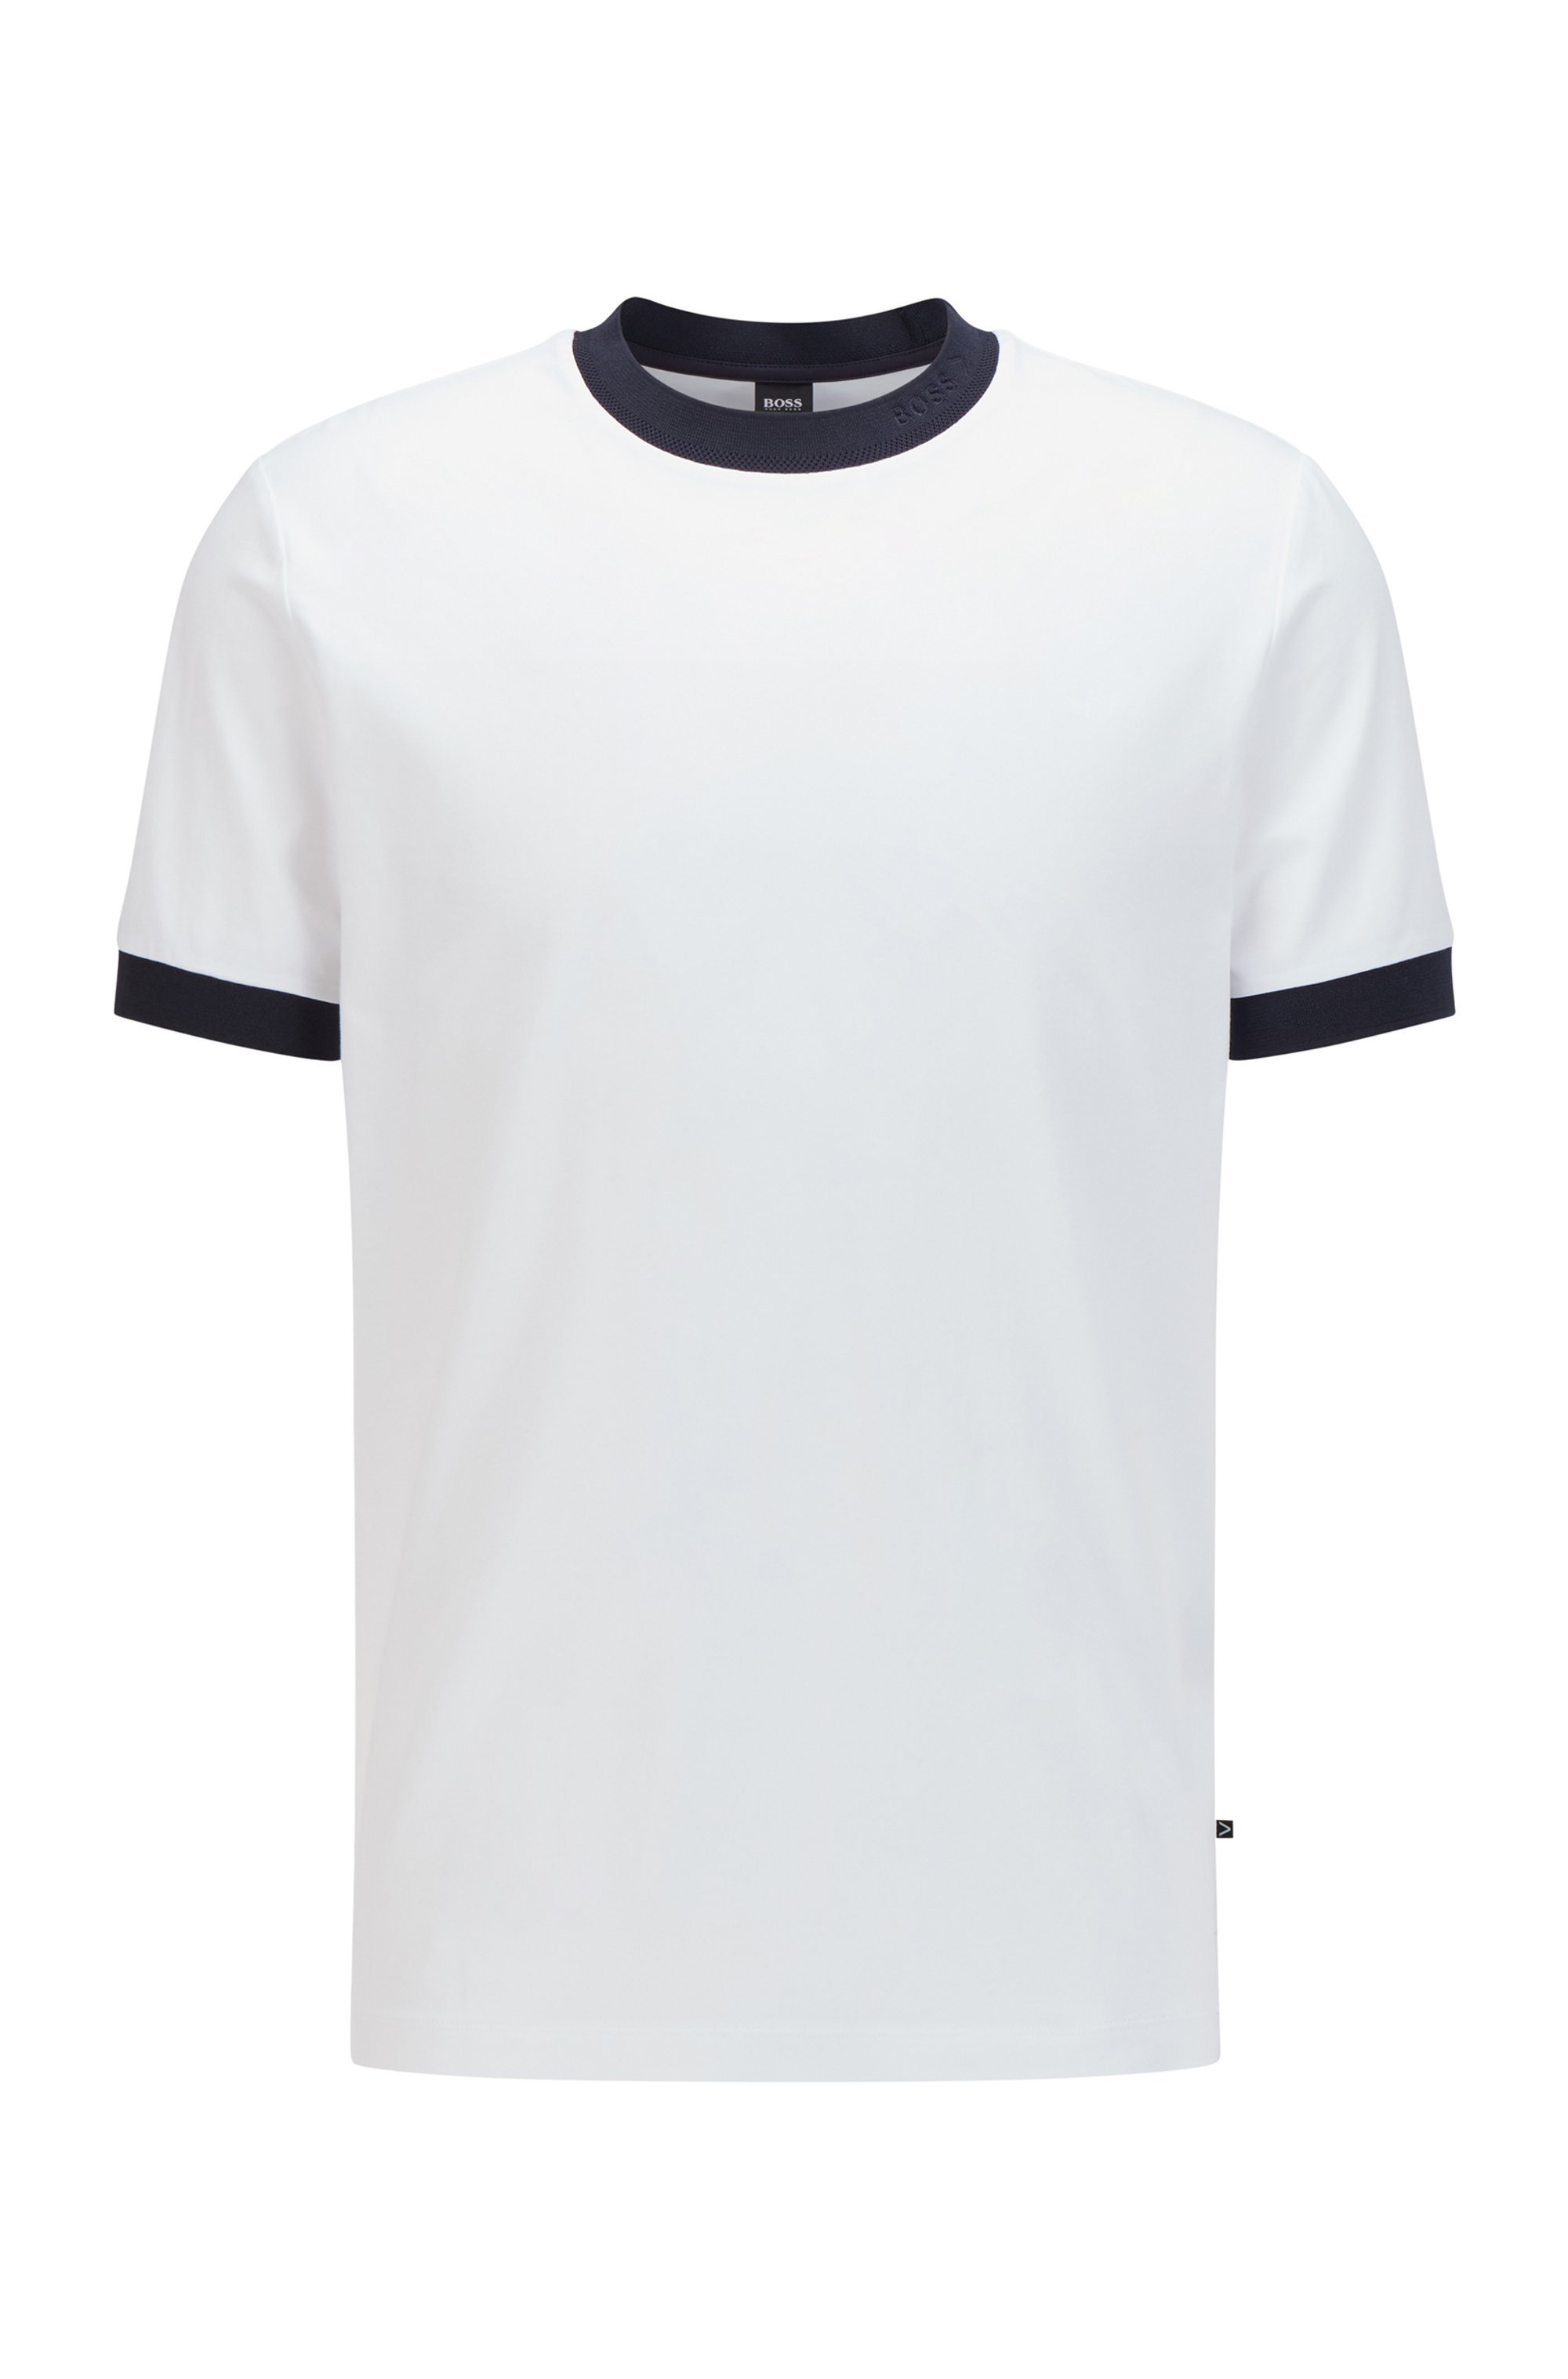 Regular-fit T-shirt in moisture-wicking stretch cotton, White